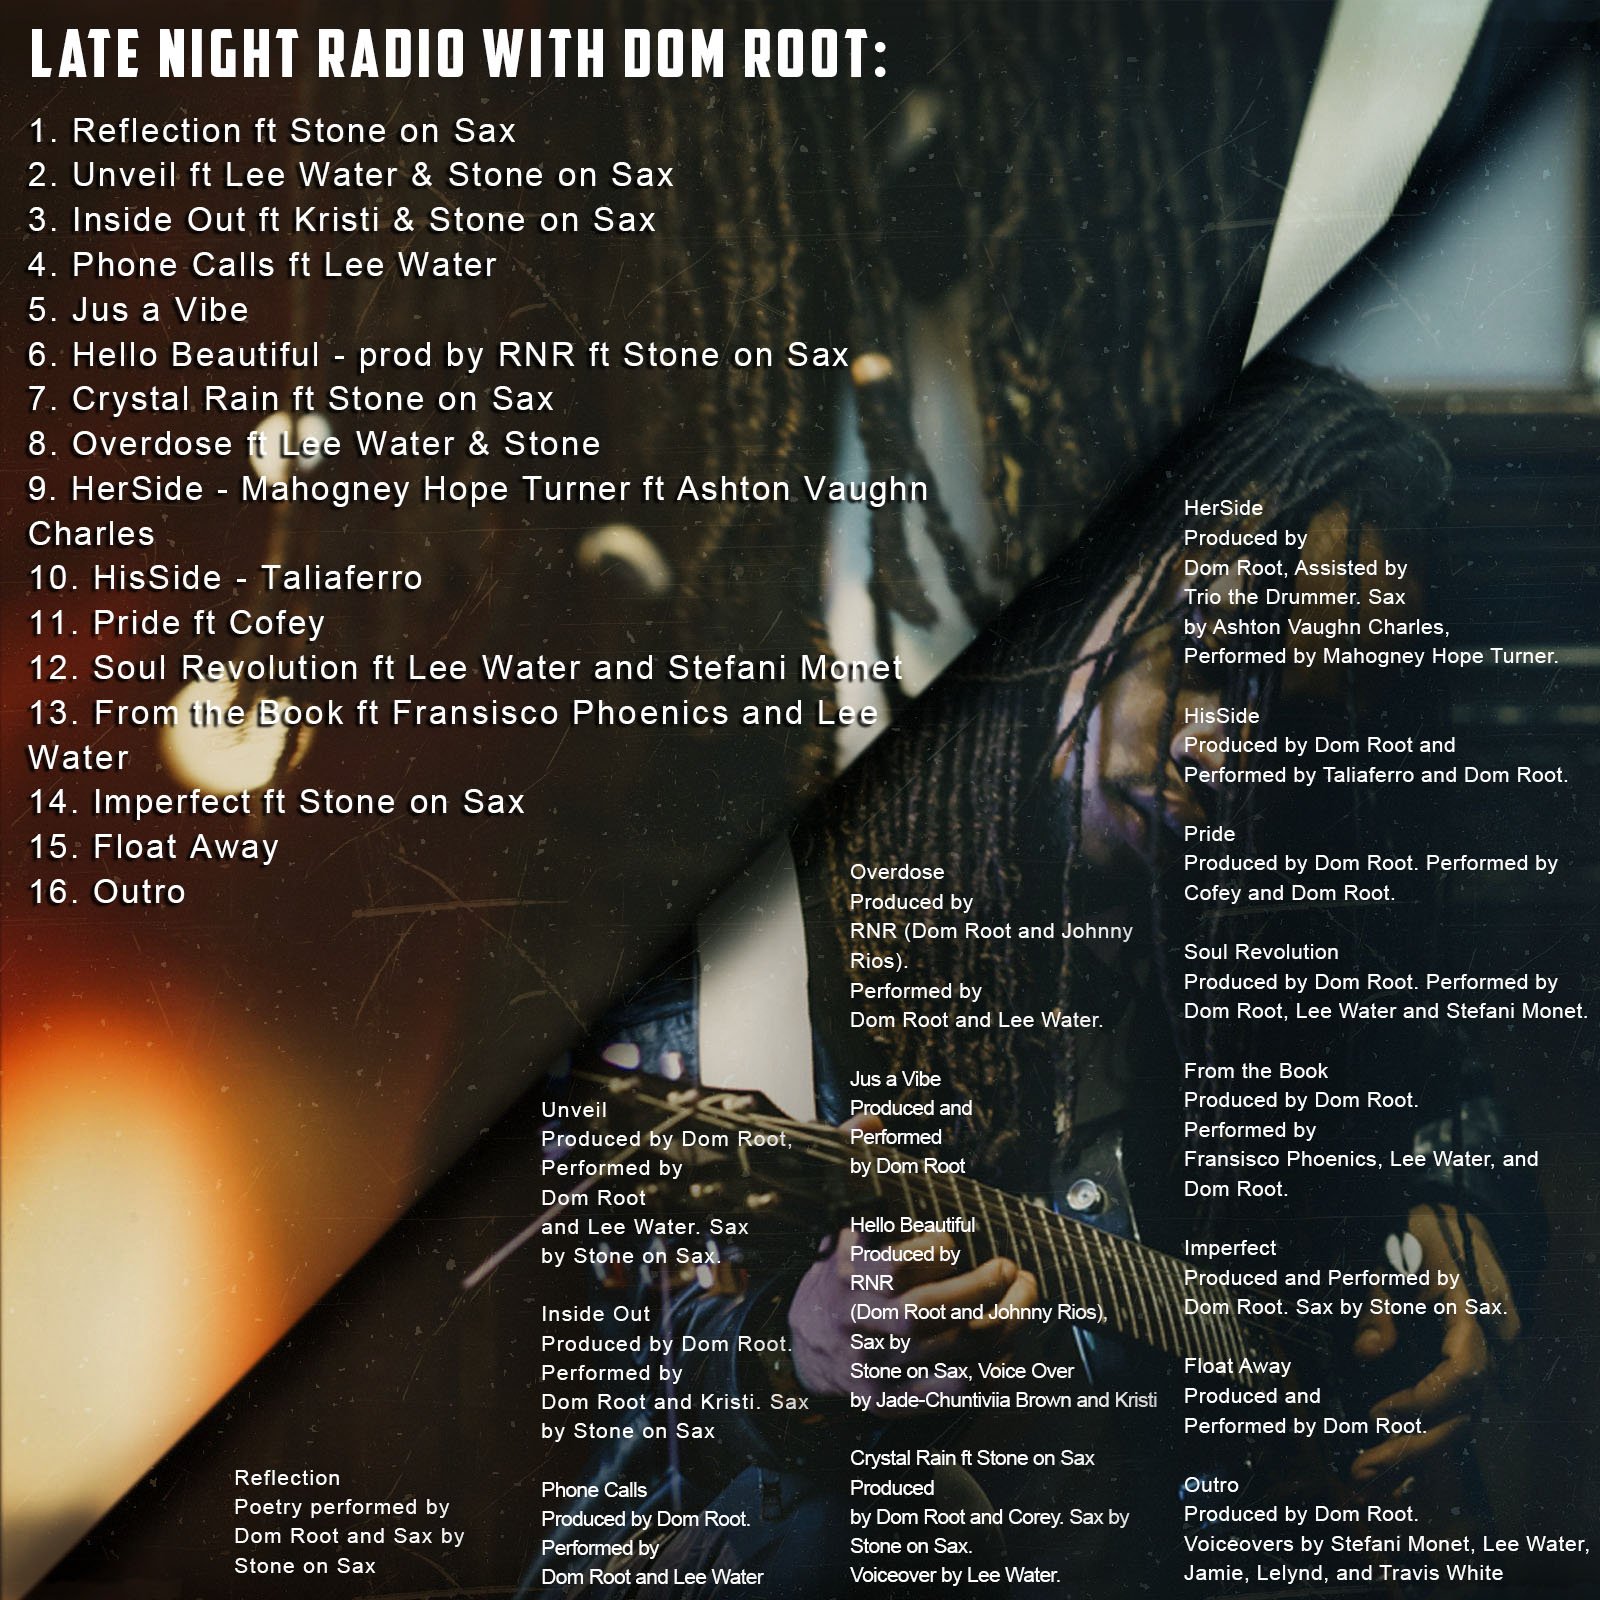 late nigh radio-back cover_revised_2.jpg